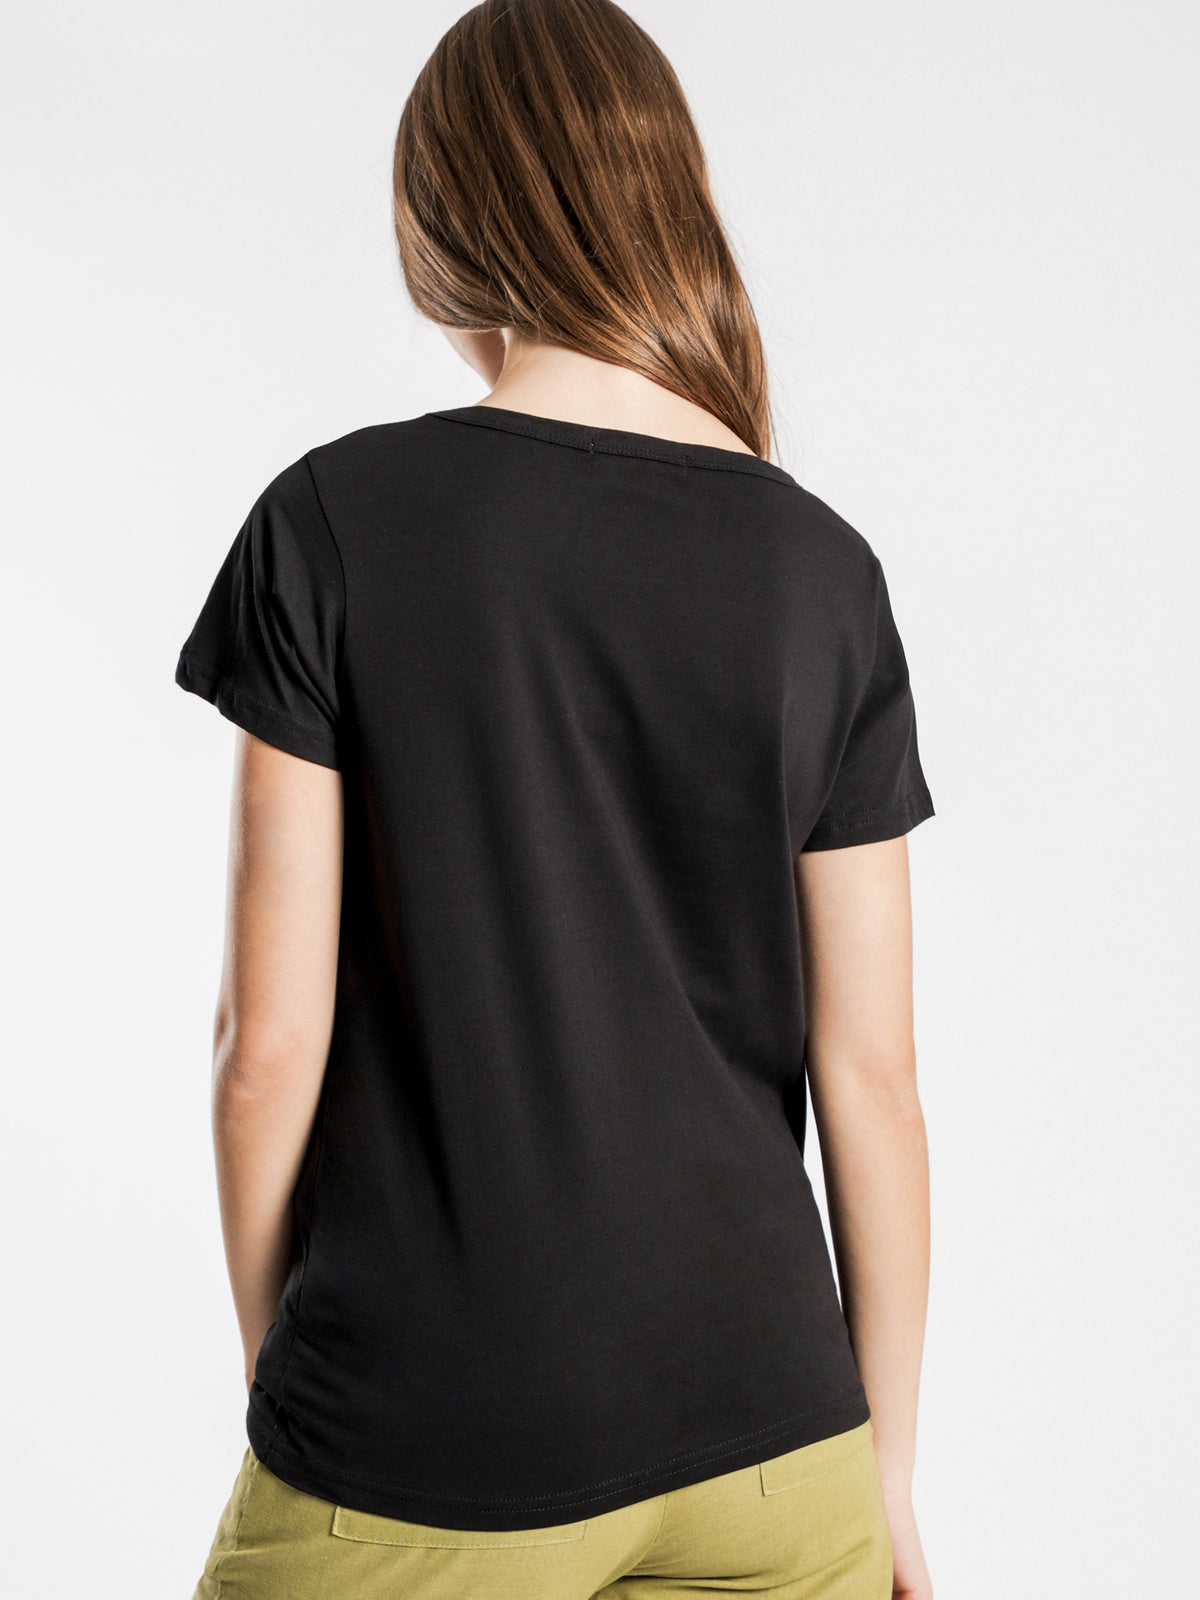 Jamie Basic Scoop T-Shirt in Black